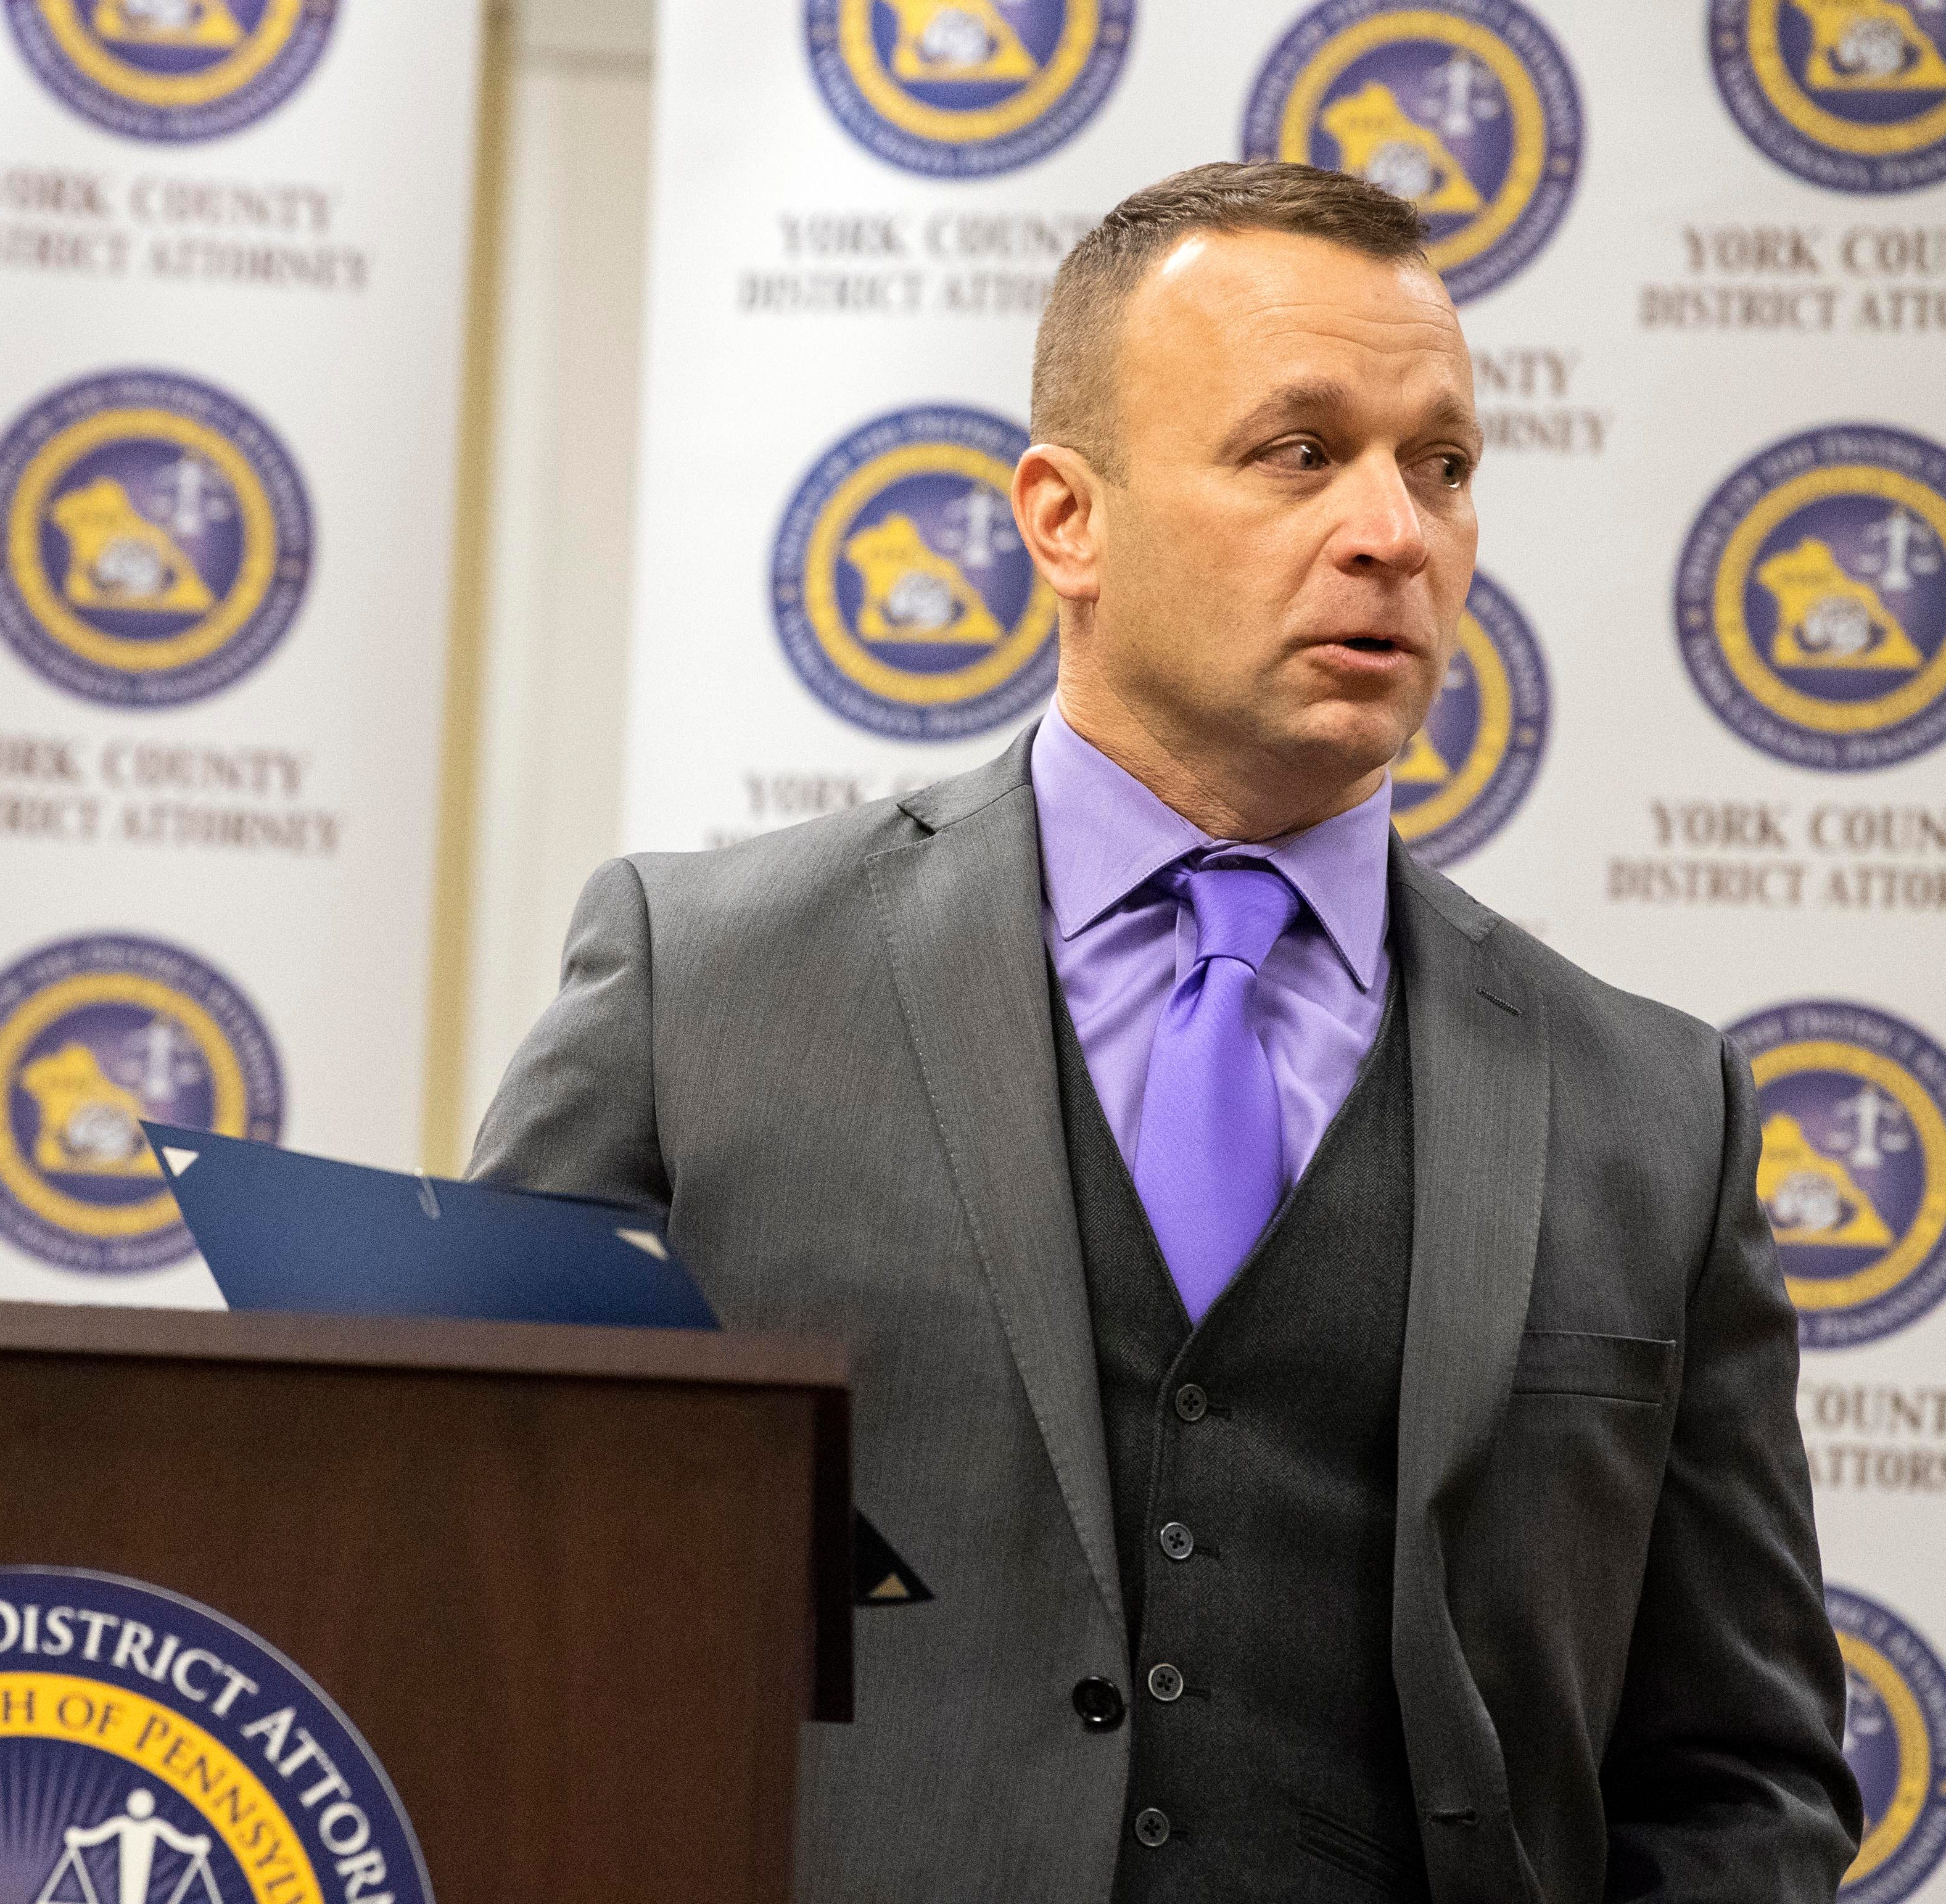 Detective Mike Hine, of Northern York Regional Police Department, tears up while talking about his work in procecuting child abuse and sexual assault cases, Friday, Dec. 14, 2018. Detective Hine was honored with the 'Outstanding Service as a Detective/Investigator' award.